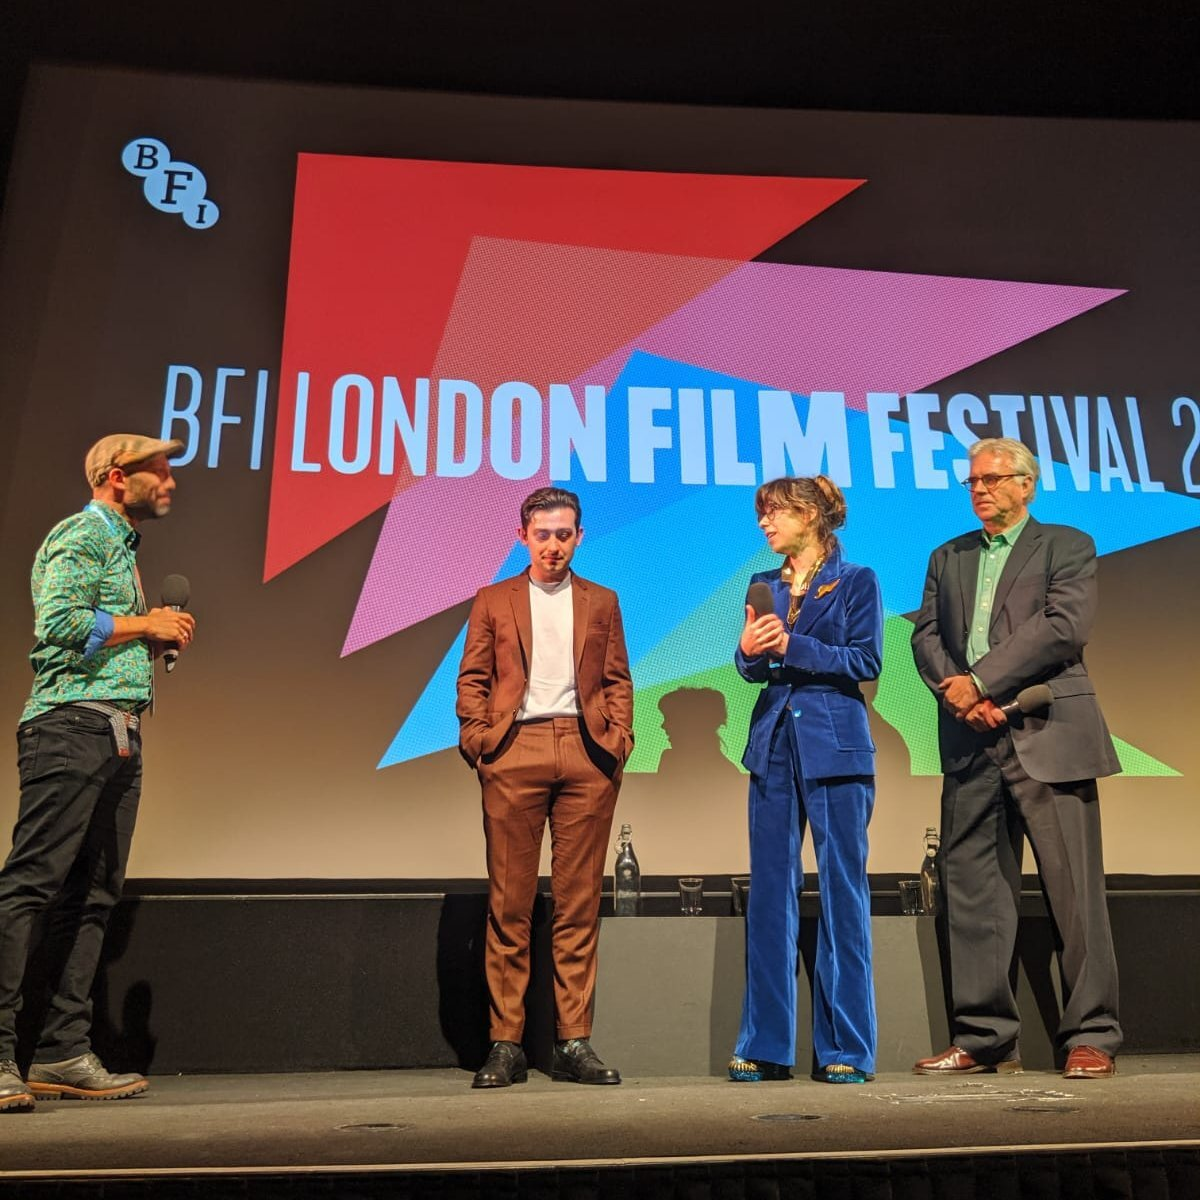 Eternal Beauty Premiere in London - Eternal Beauty, written/directed by Craig Roberts and starring Sally Hawkins, David Thewlis, Alice Lowe, Billie Piper, and Penelope Wilton premiered on 8th October 2019 at the BFI London Film Festival!